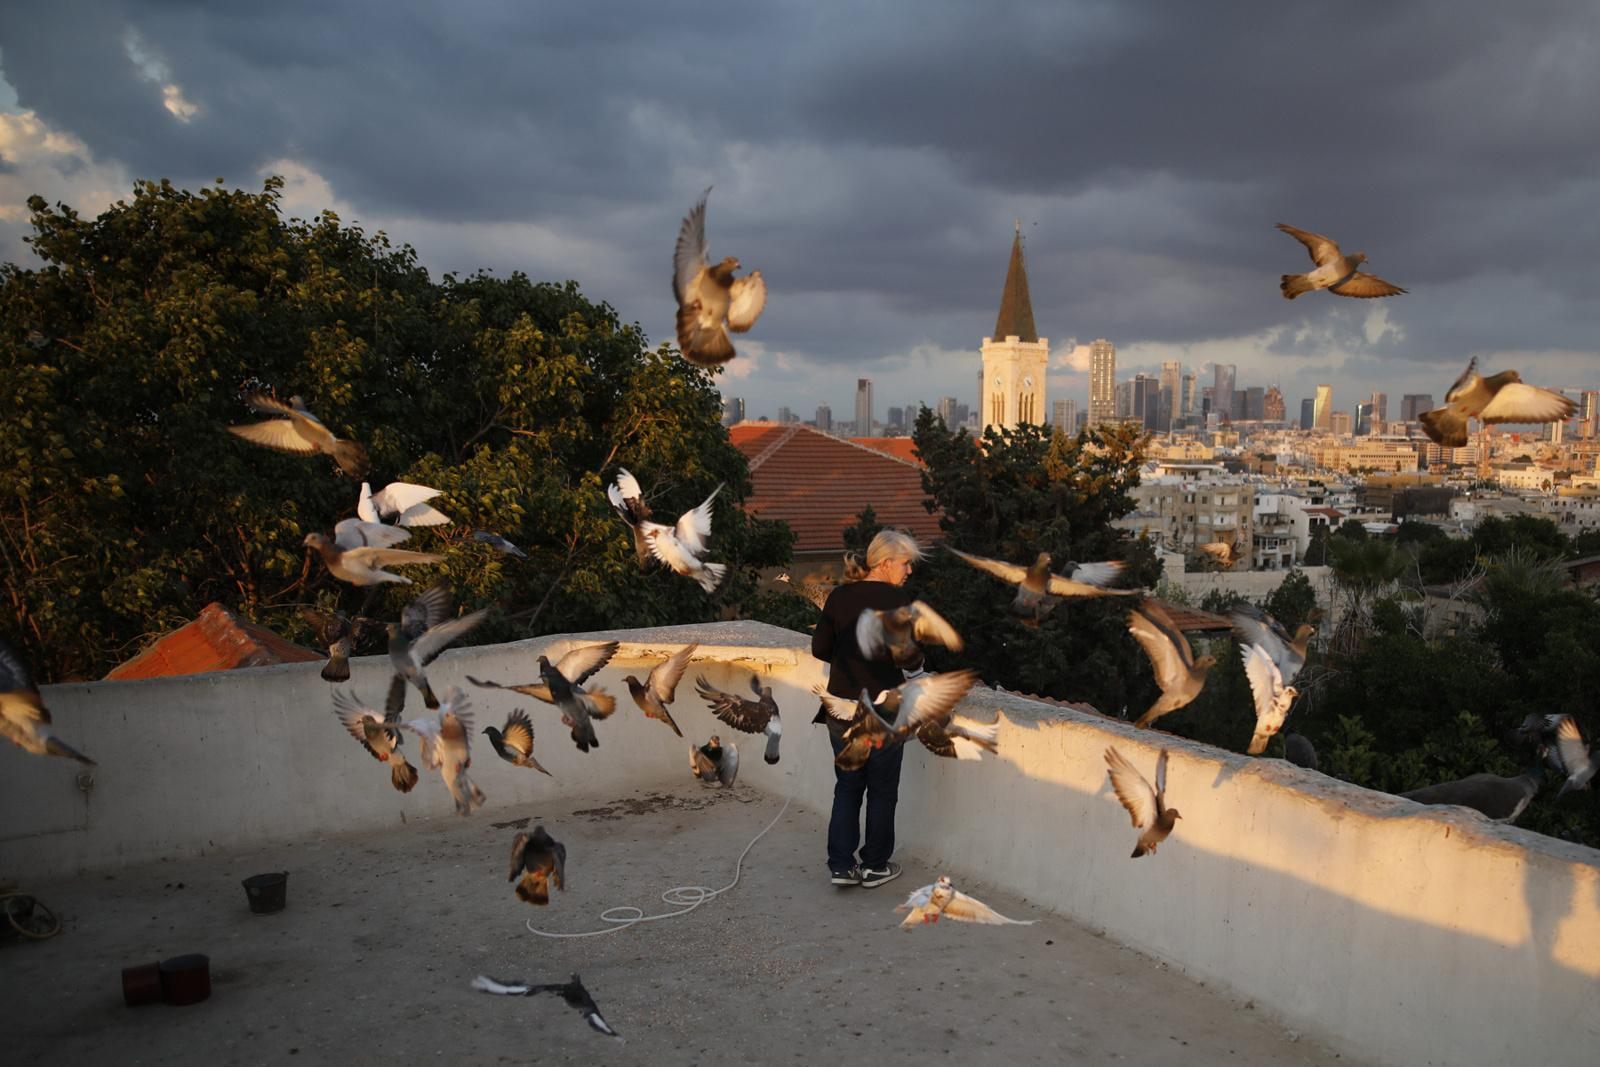 A woman feeds birds on her rooftop, which is her daily sunset ritual, November 20, 2017, in Yafo, Tel Aviv, Israel.